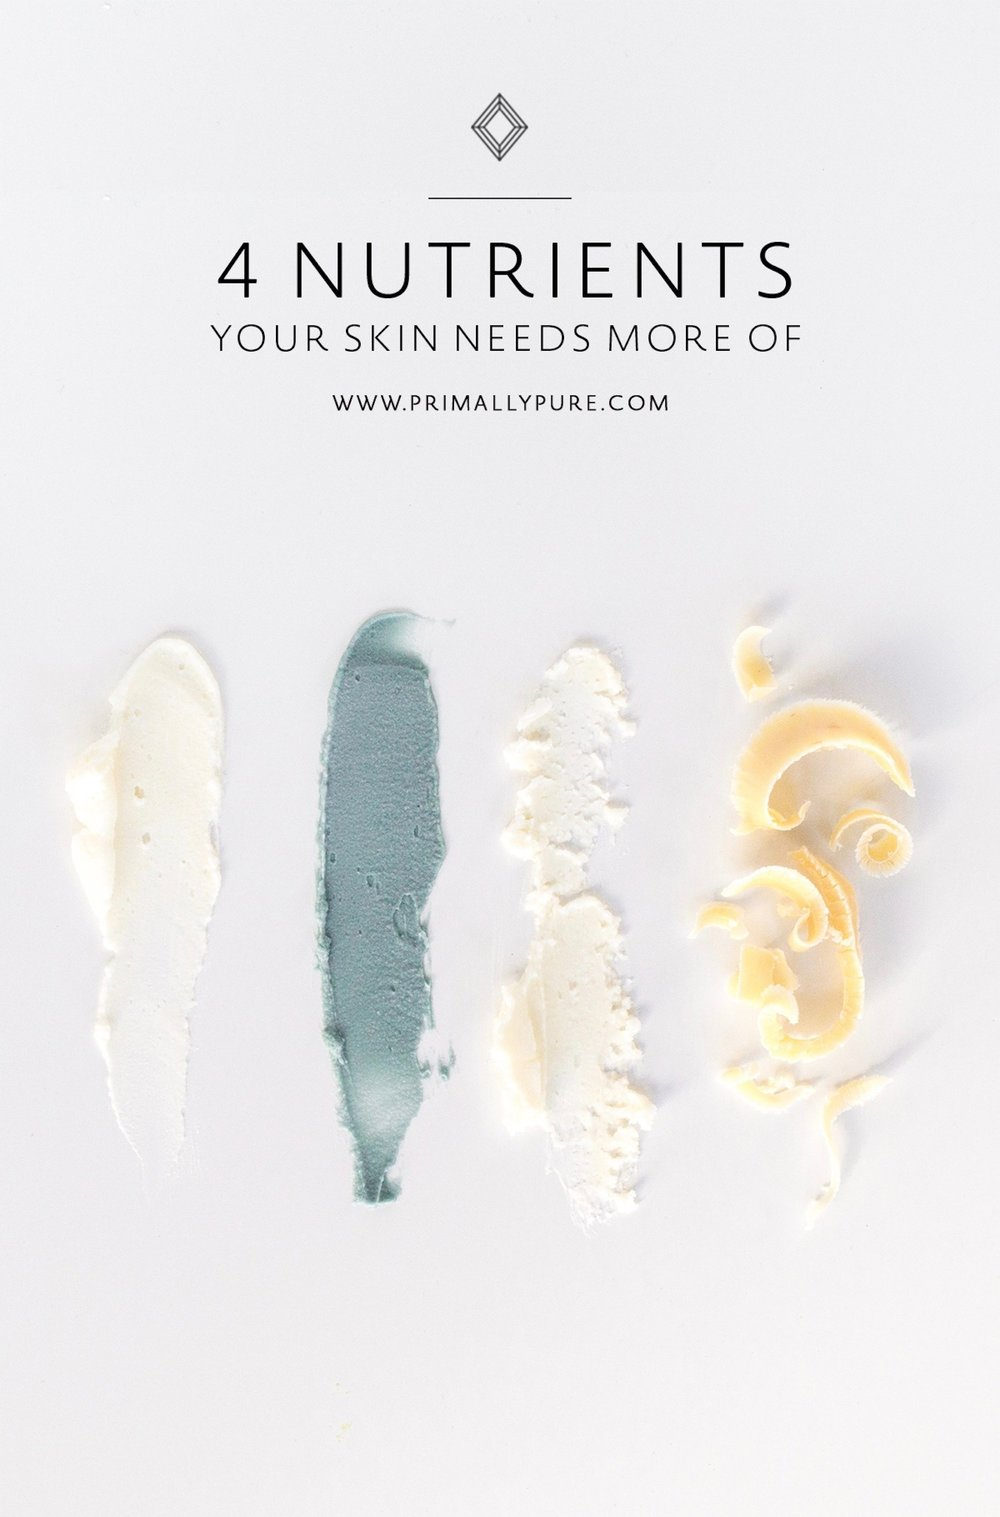 4-Nutrients-Your-Skin-Needs-More-Of-Primally-Pure-Skincare.jpg